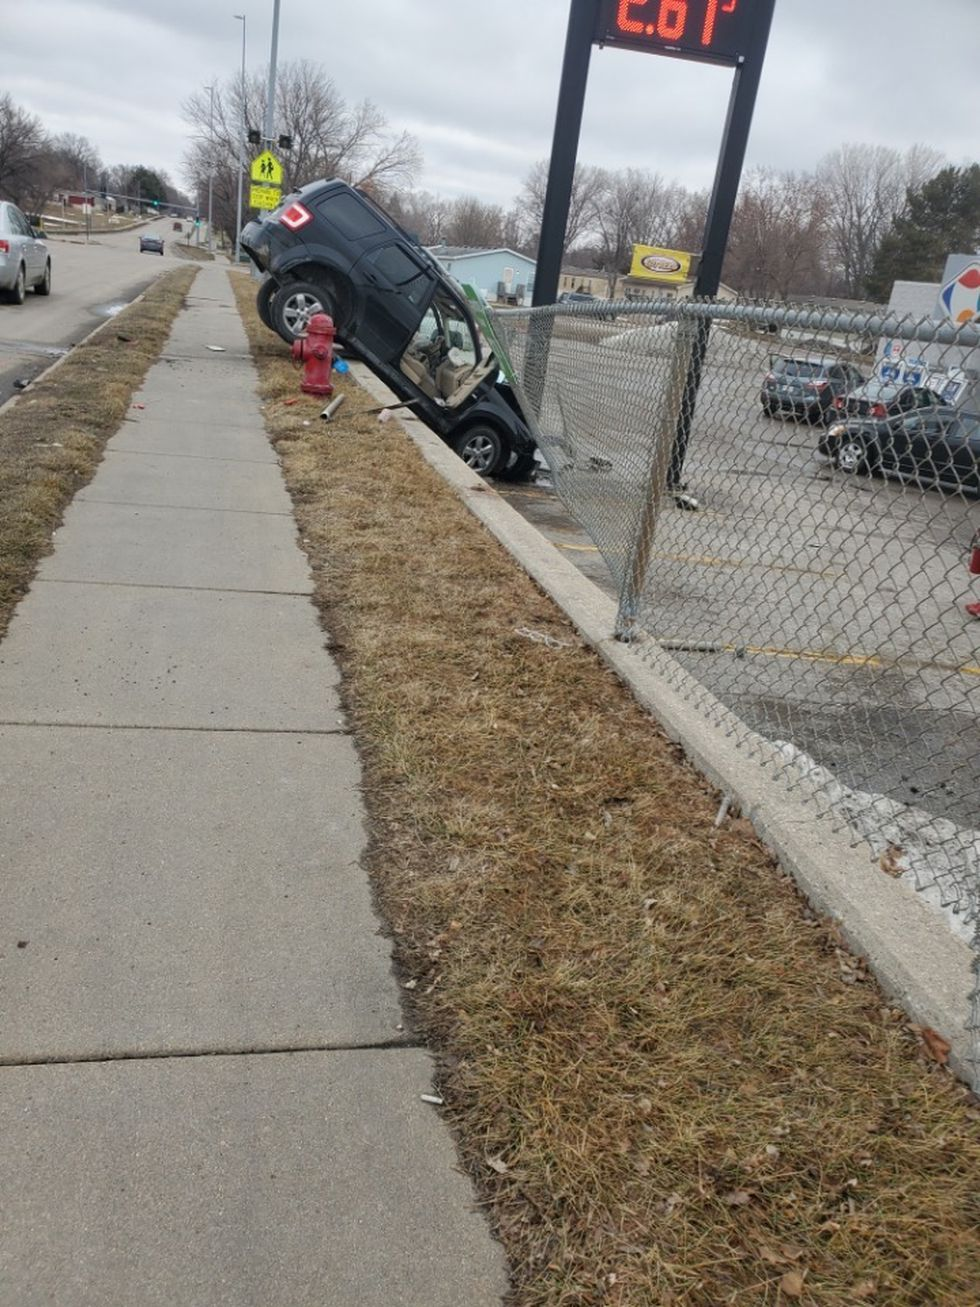 Lincoln Police responded to a car crash near N. 1st Street and Cornhusker Highway on Sunday.